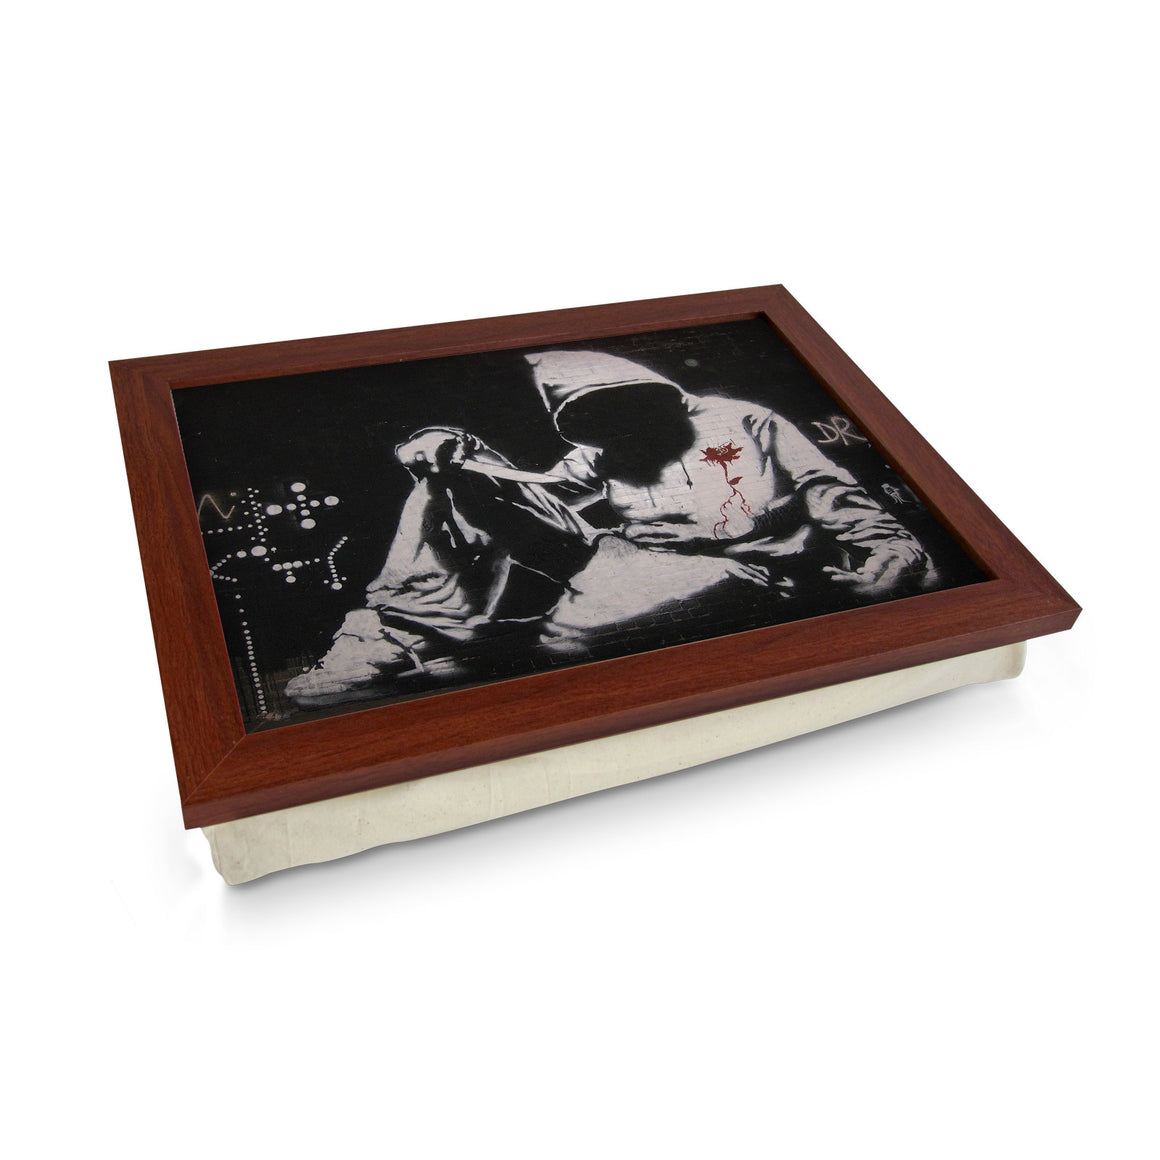 Banksy Hooded Man With Knife Lap Tray - L0477